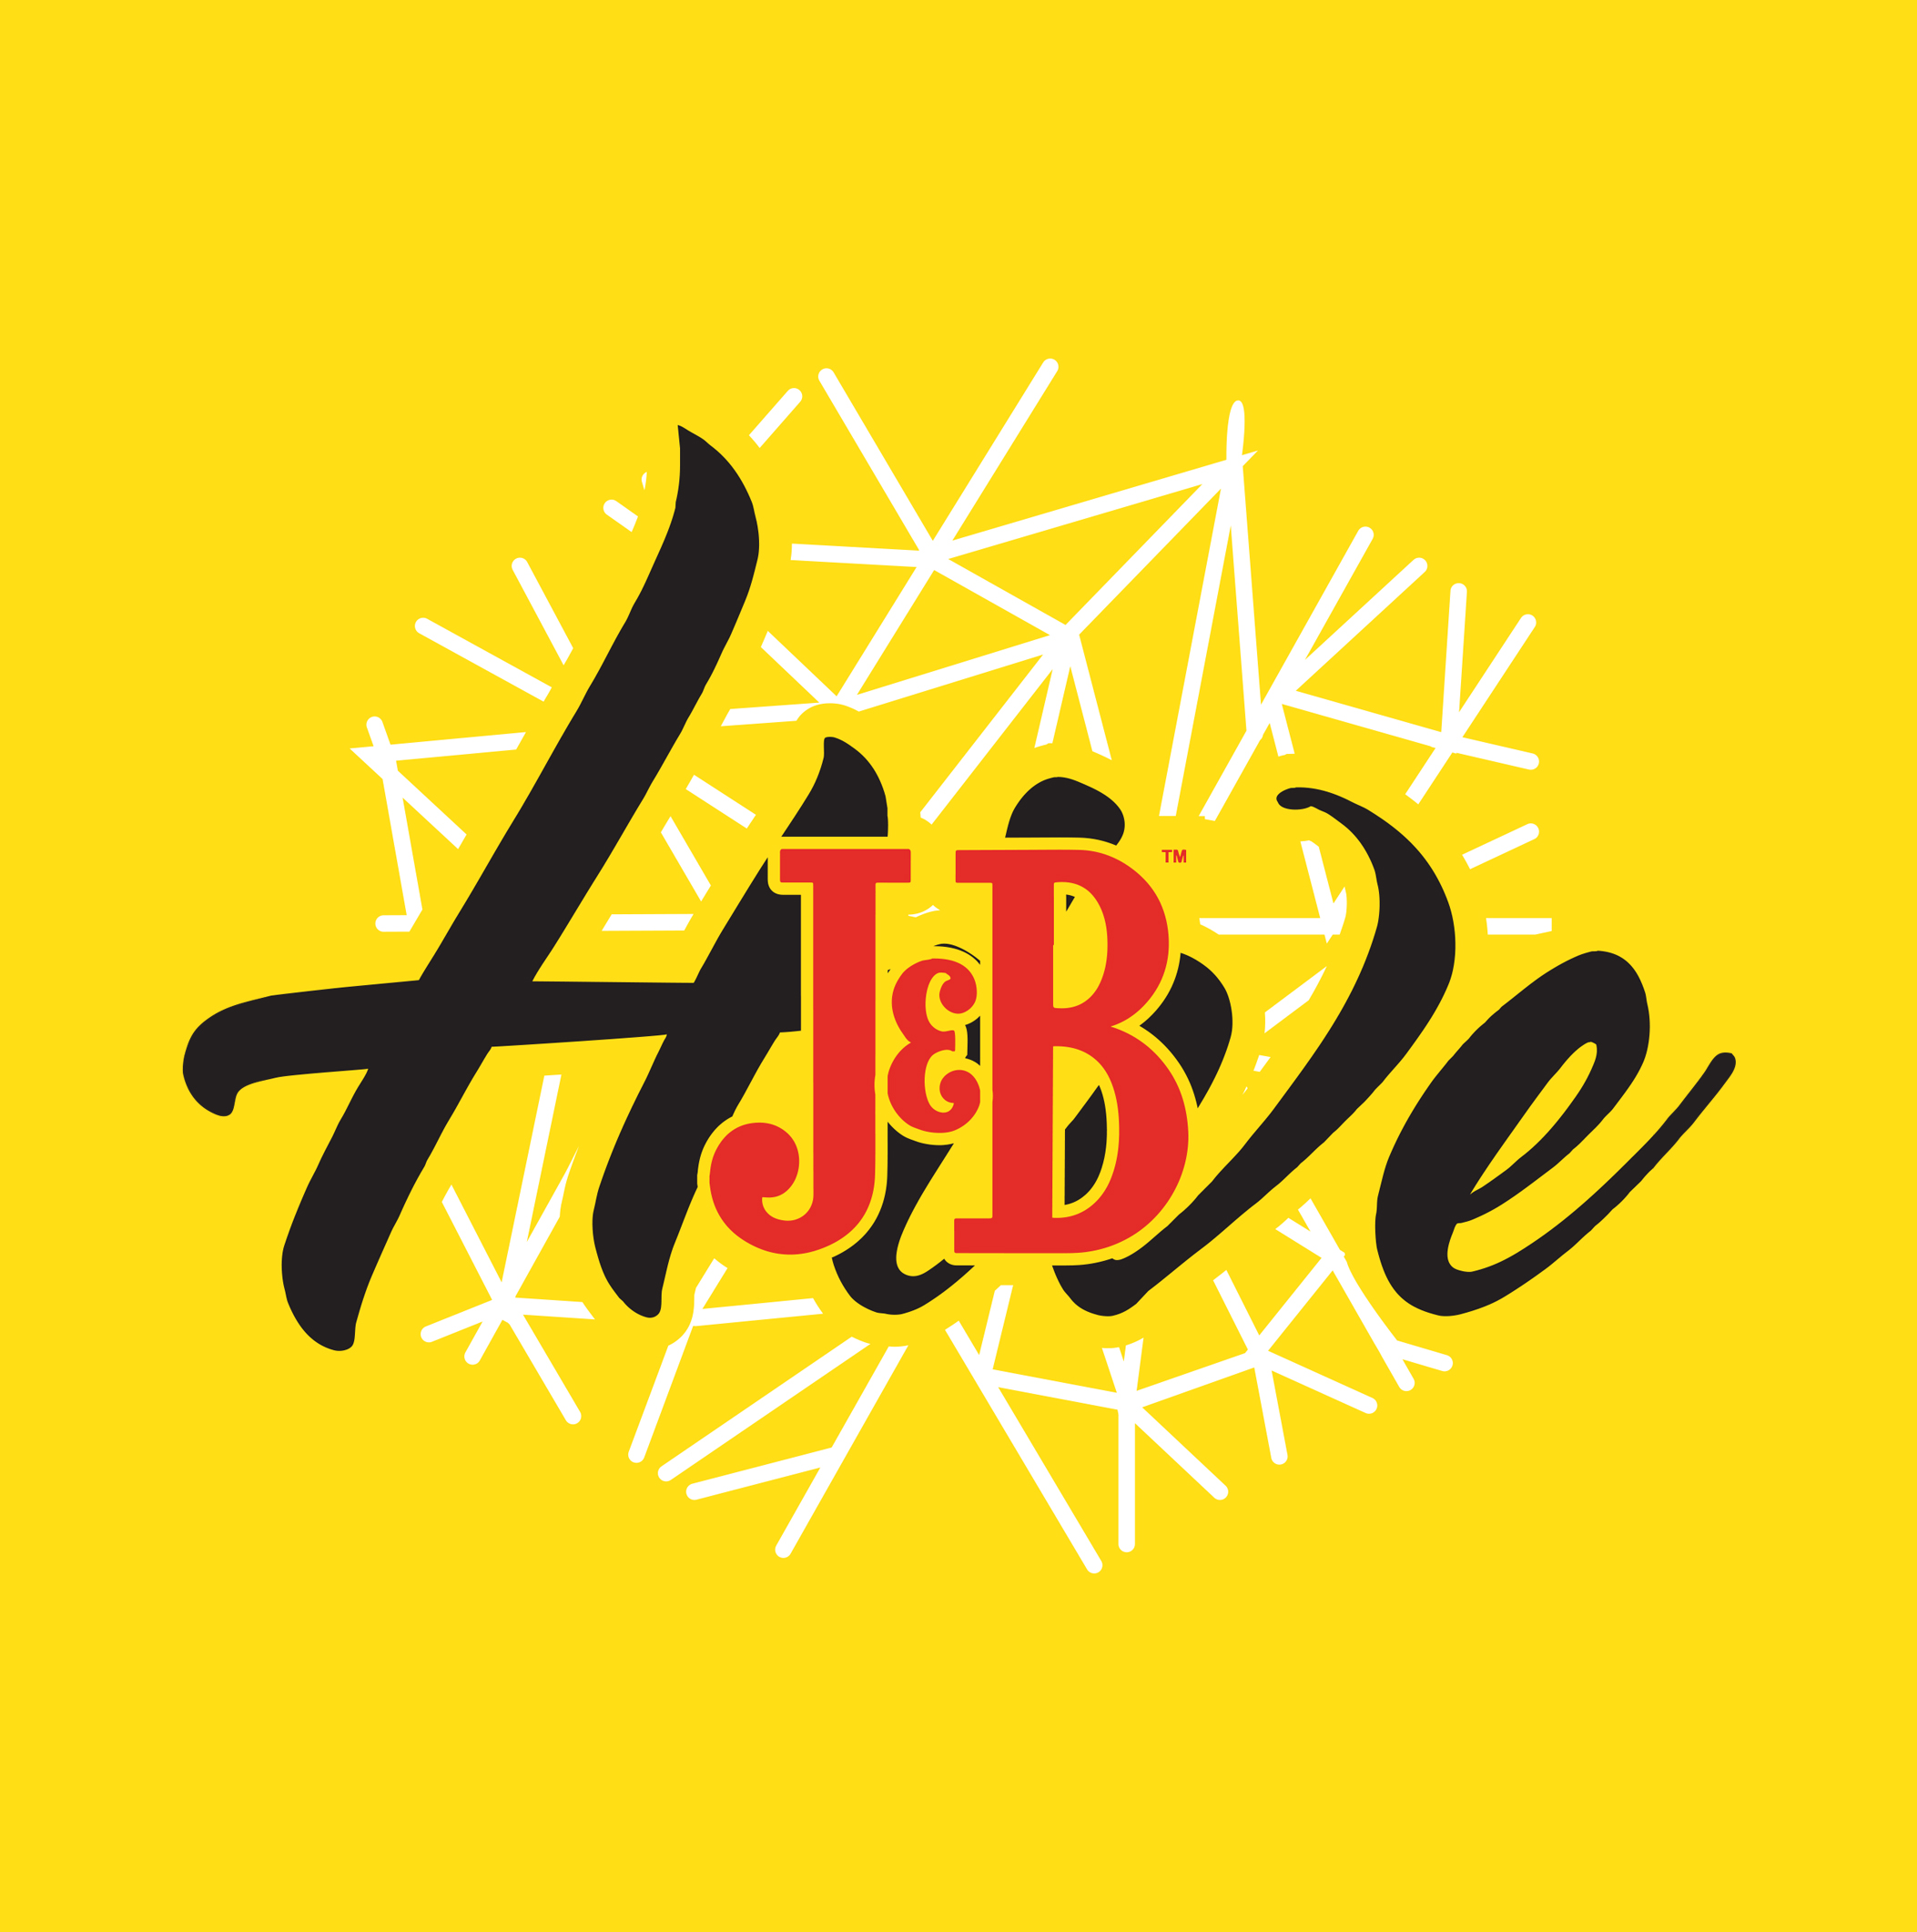 J&B HIVE TAKES A STAND TO SUPPORT LOCAL SMALL BUSINESSES